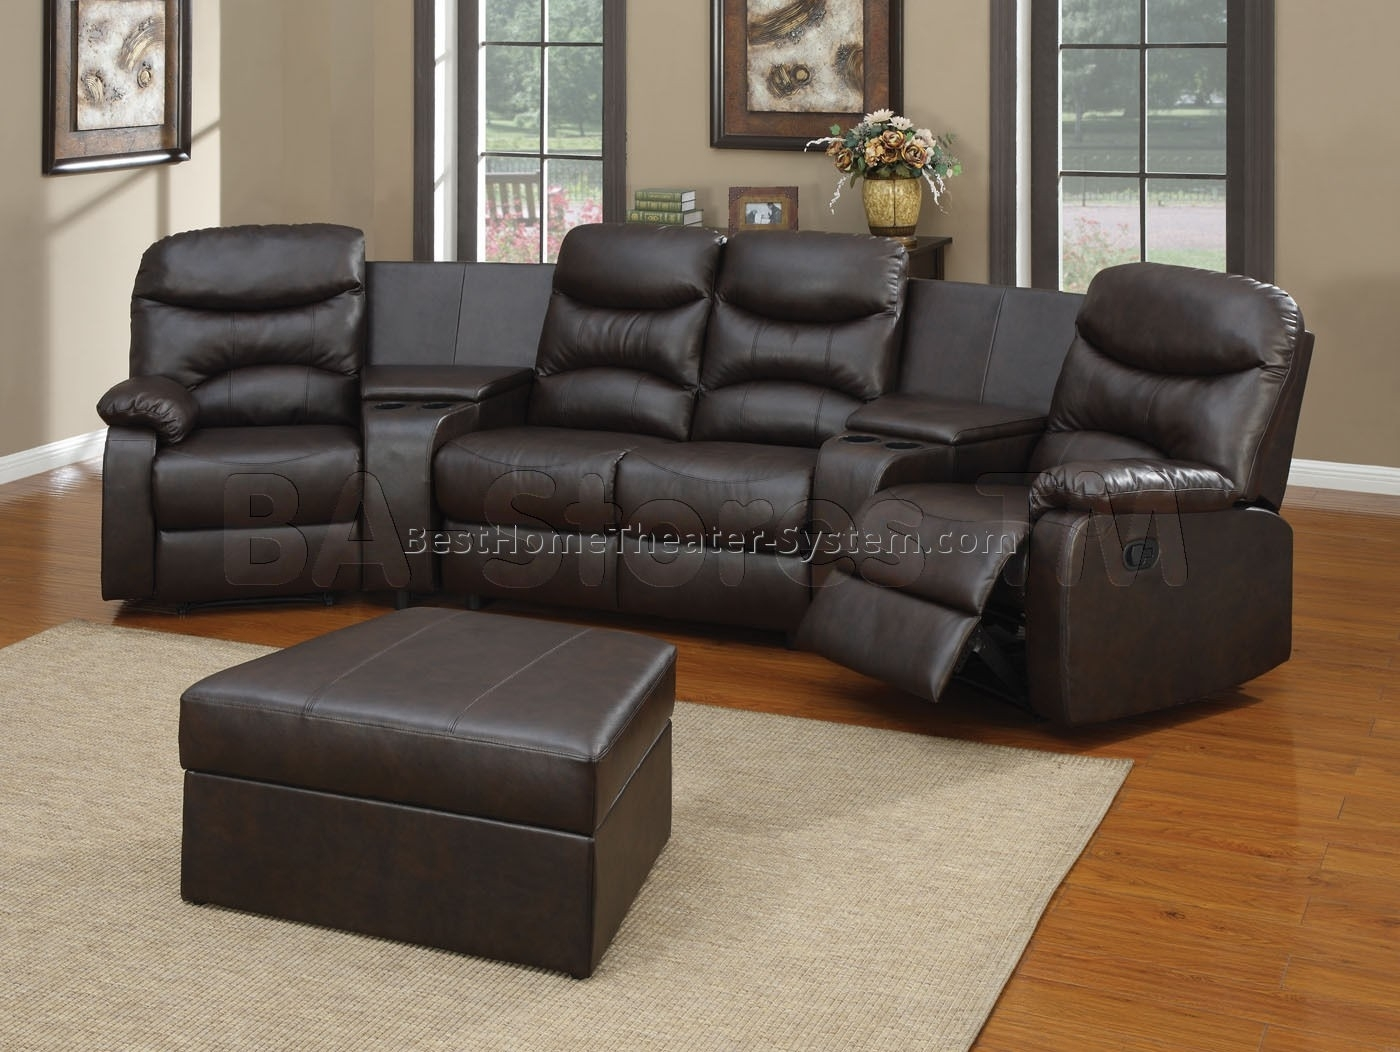 Awesome Sectional Sofa Theater Style - Mediasupload within Kanes Sectional Sofas (Image 2 of 10)